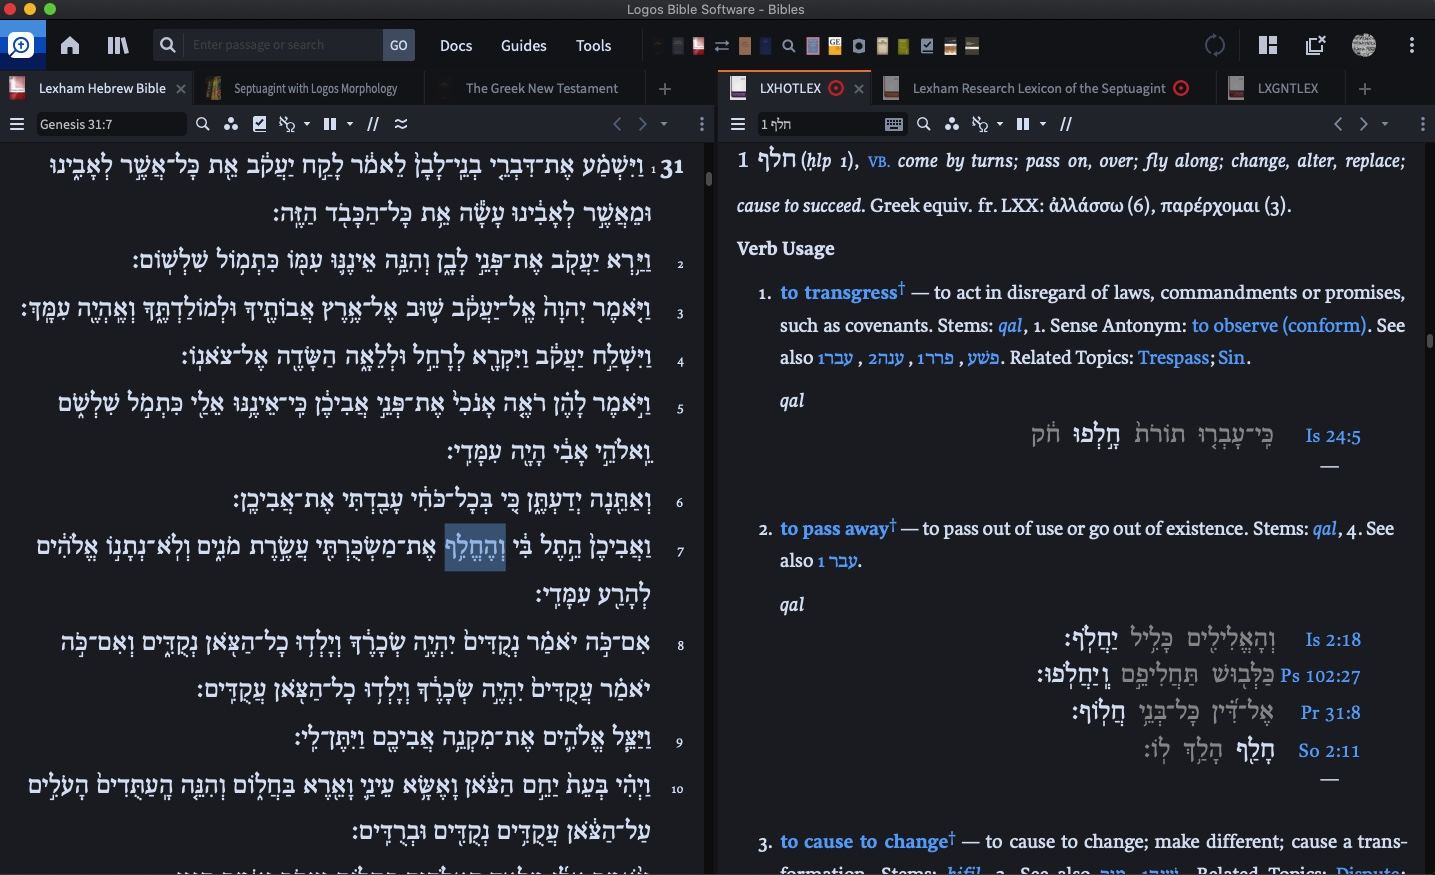 Lexham Research Lexicon of the Hebrew Bible